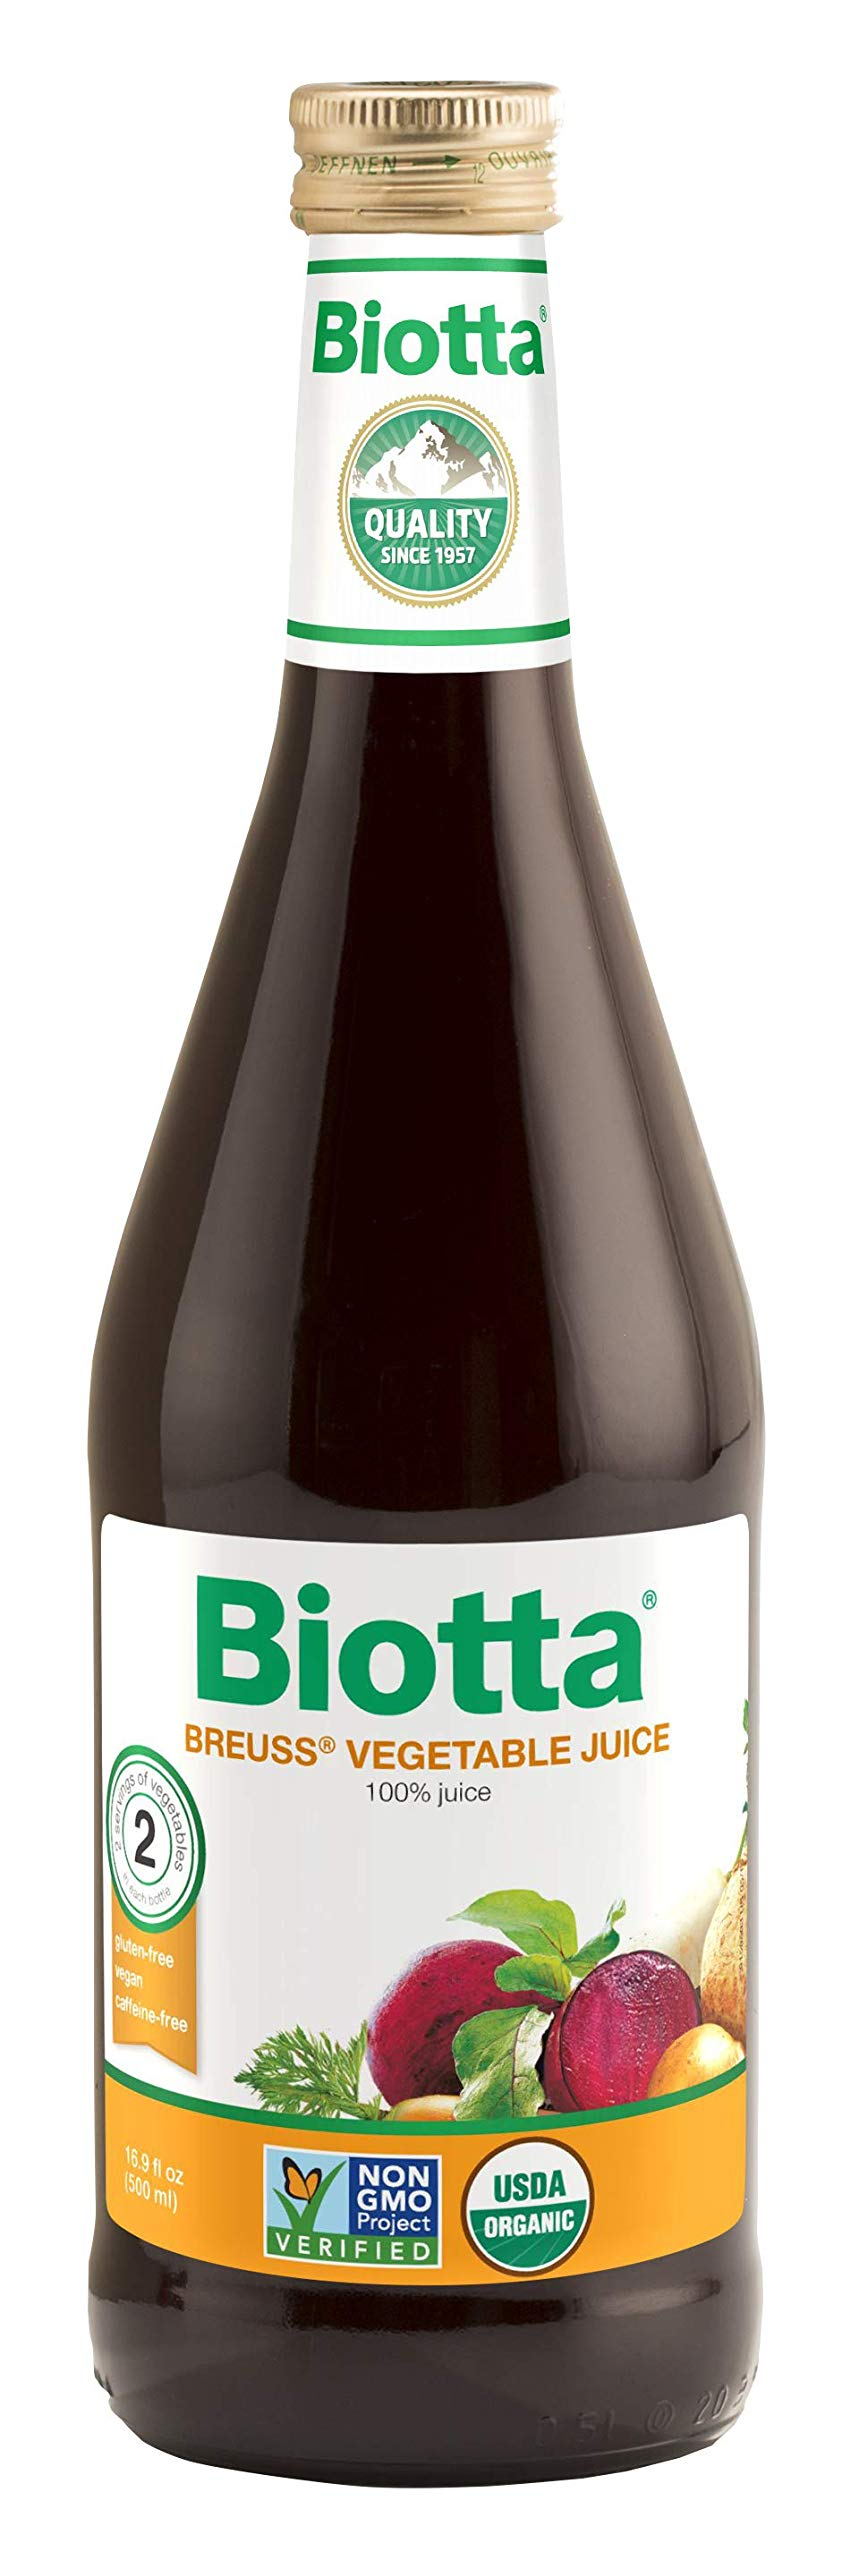 Biotta Organic Breuss Vegetable Juice, 6 bottles by Biotta